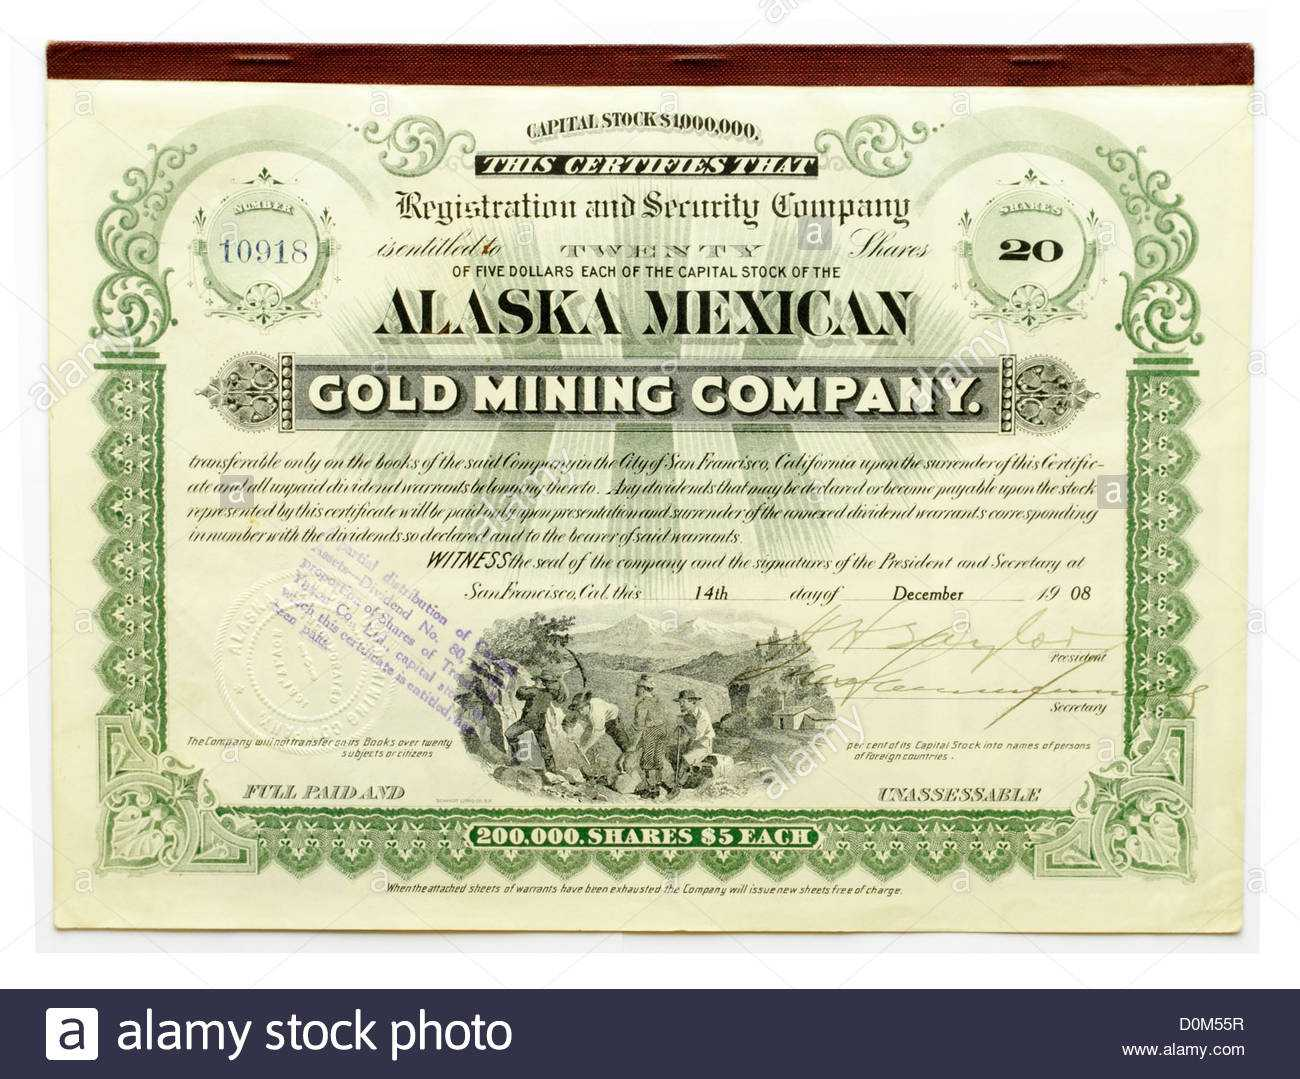 Share Certificate Stock Photos & Share Certificate Stock Inside Corporate Bond Certificate Template